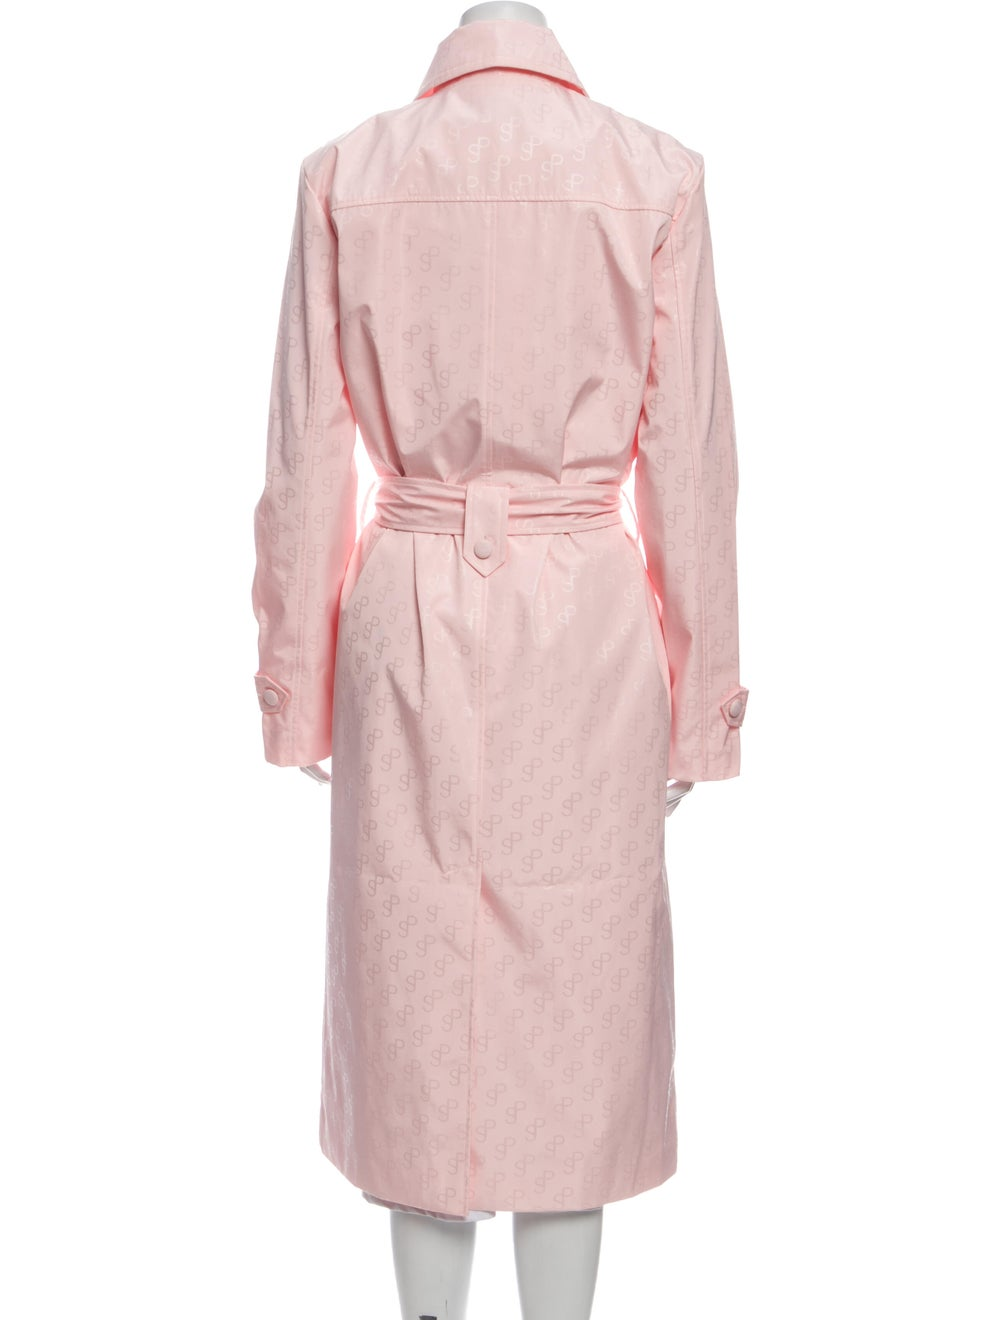 Saks Potts Trench Coat w/ Tags Pink - image 3